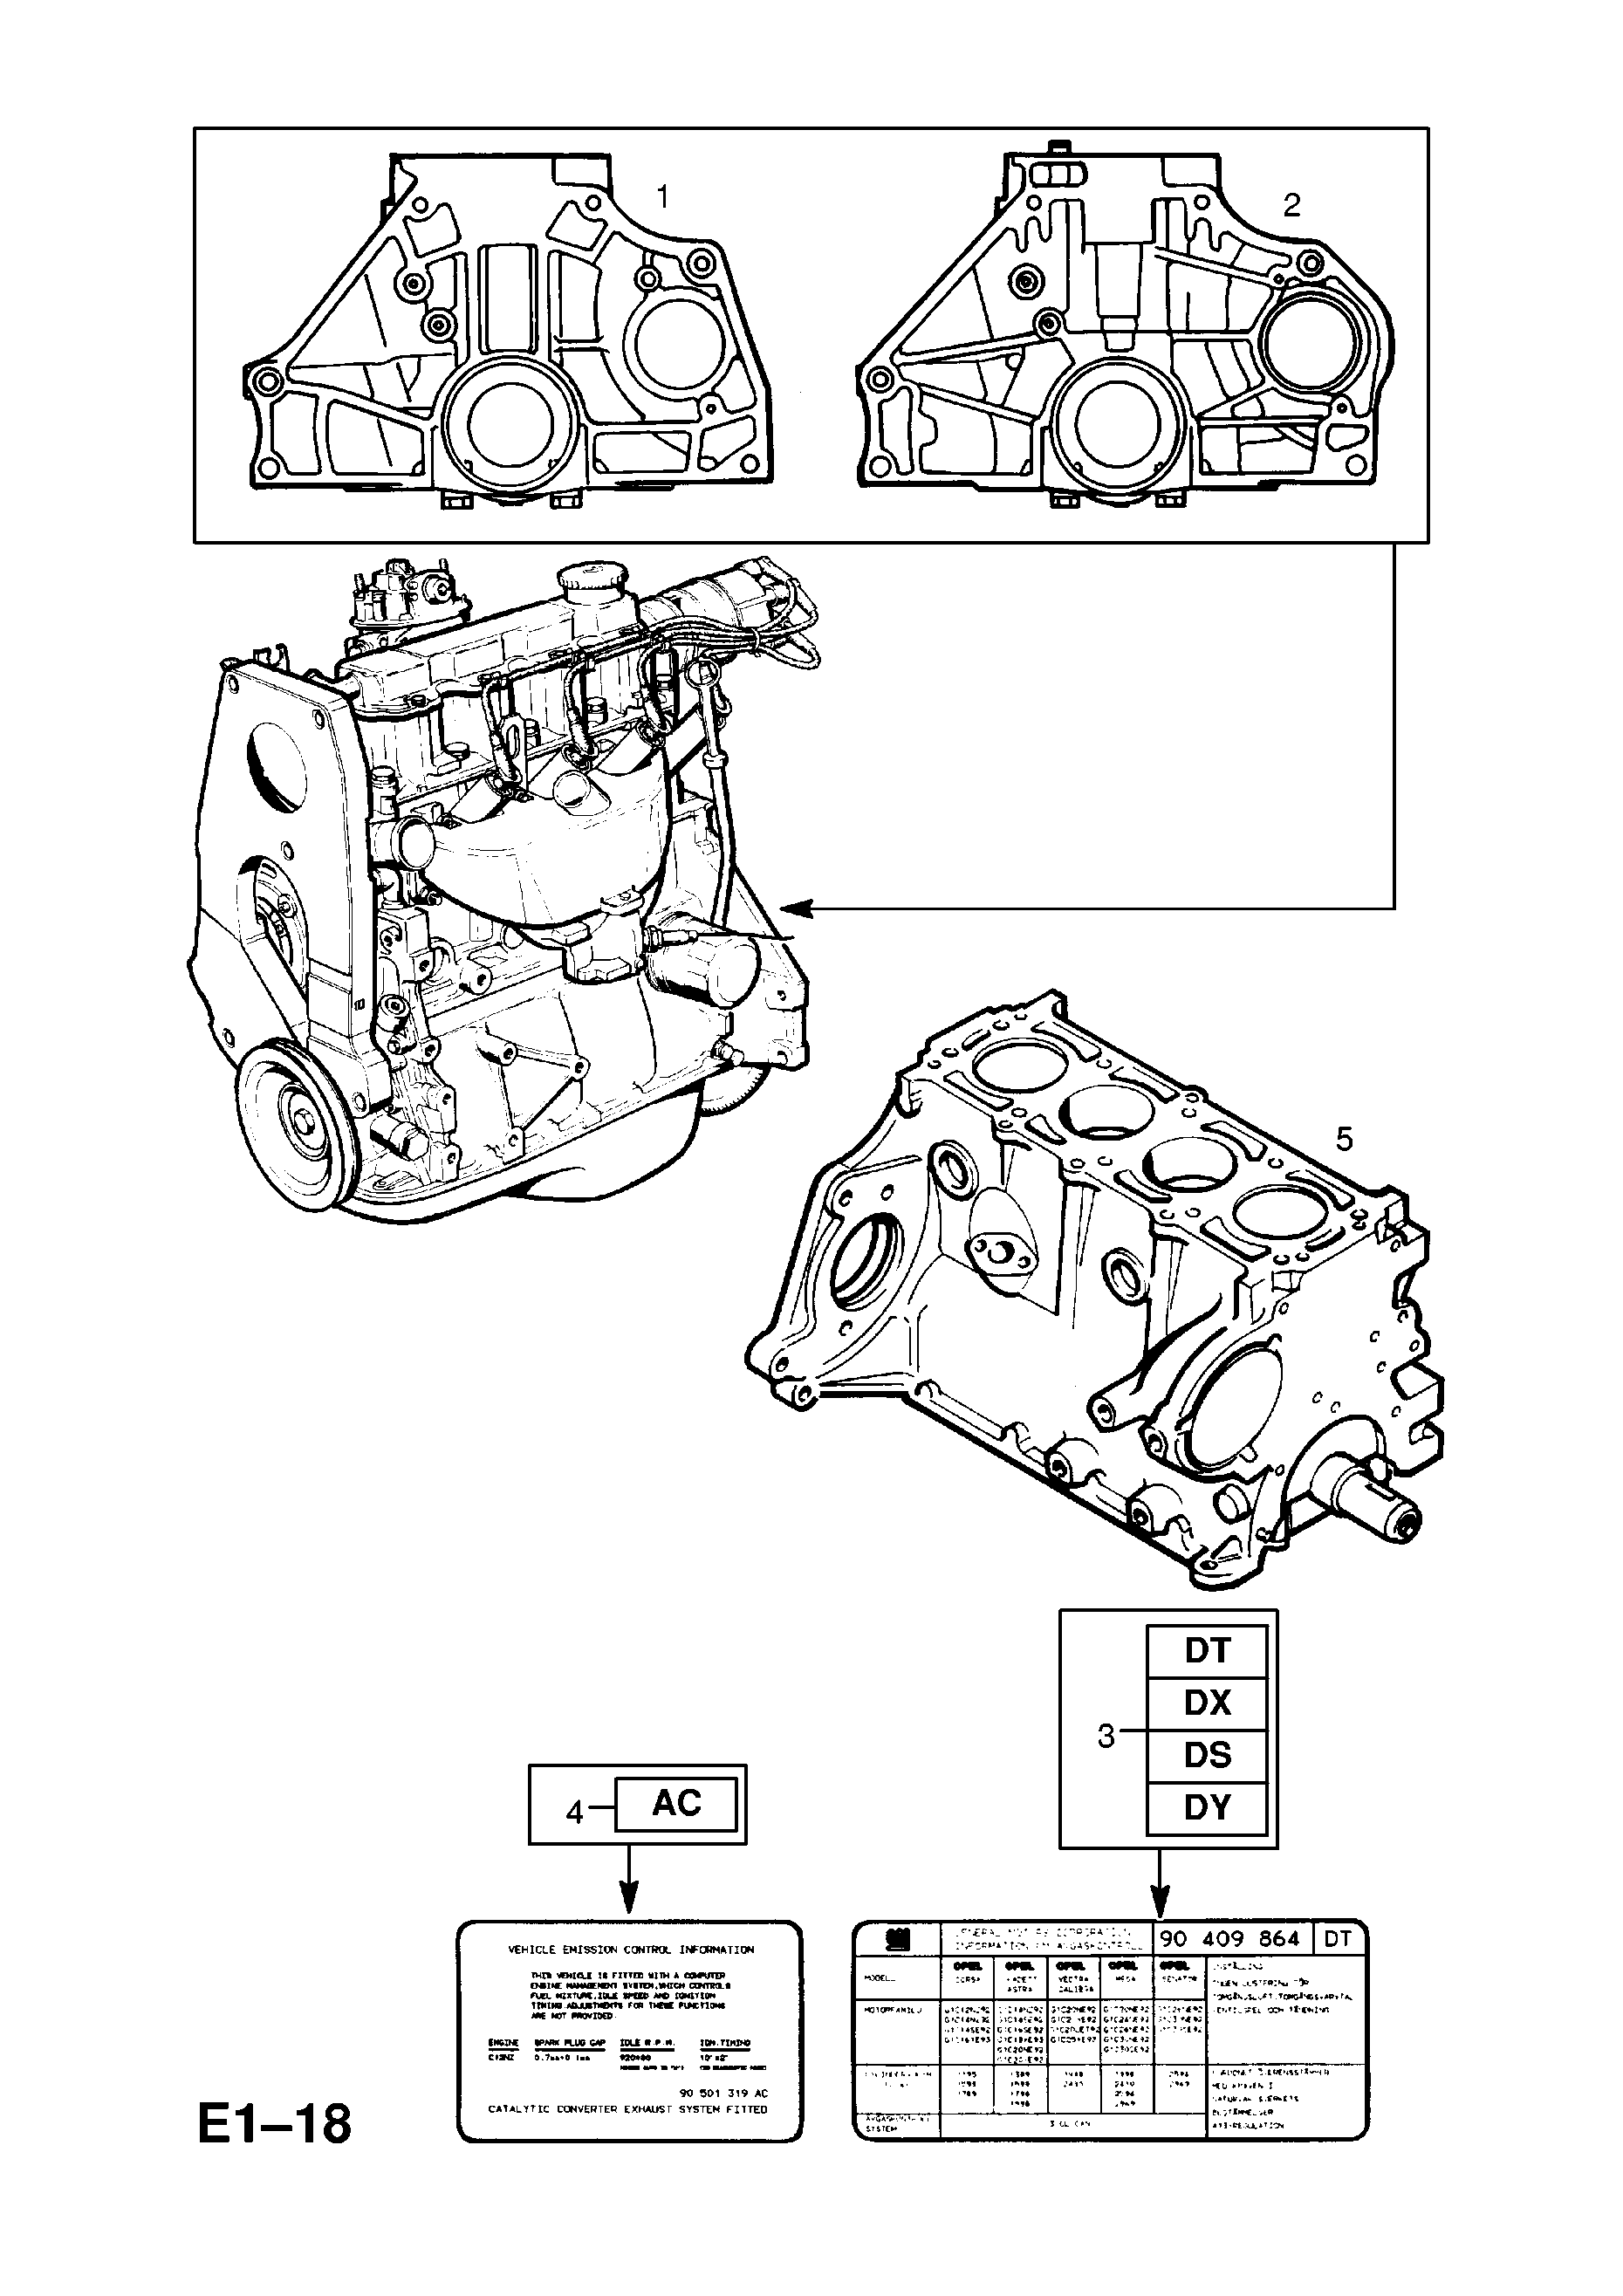 Vauxhall Corsa B 1993 2002 E Engine And Clutch 2 12nzl71 Manual Transmission Diagram Auto Repair Gm Part Number Genuine Description Range Assembly12nzl71 With